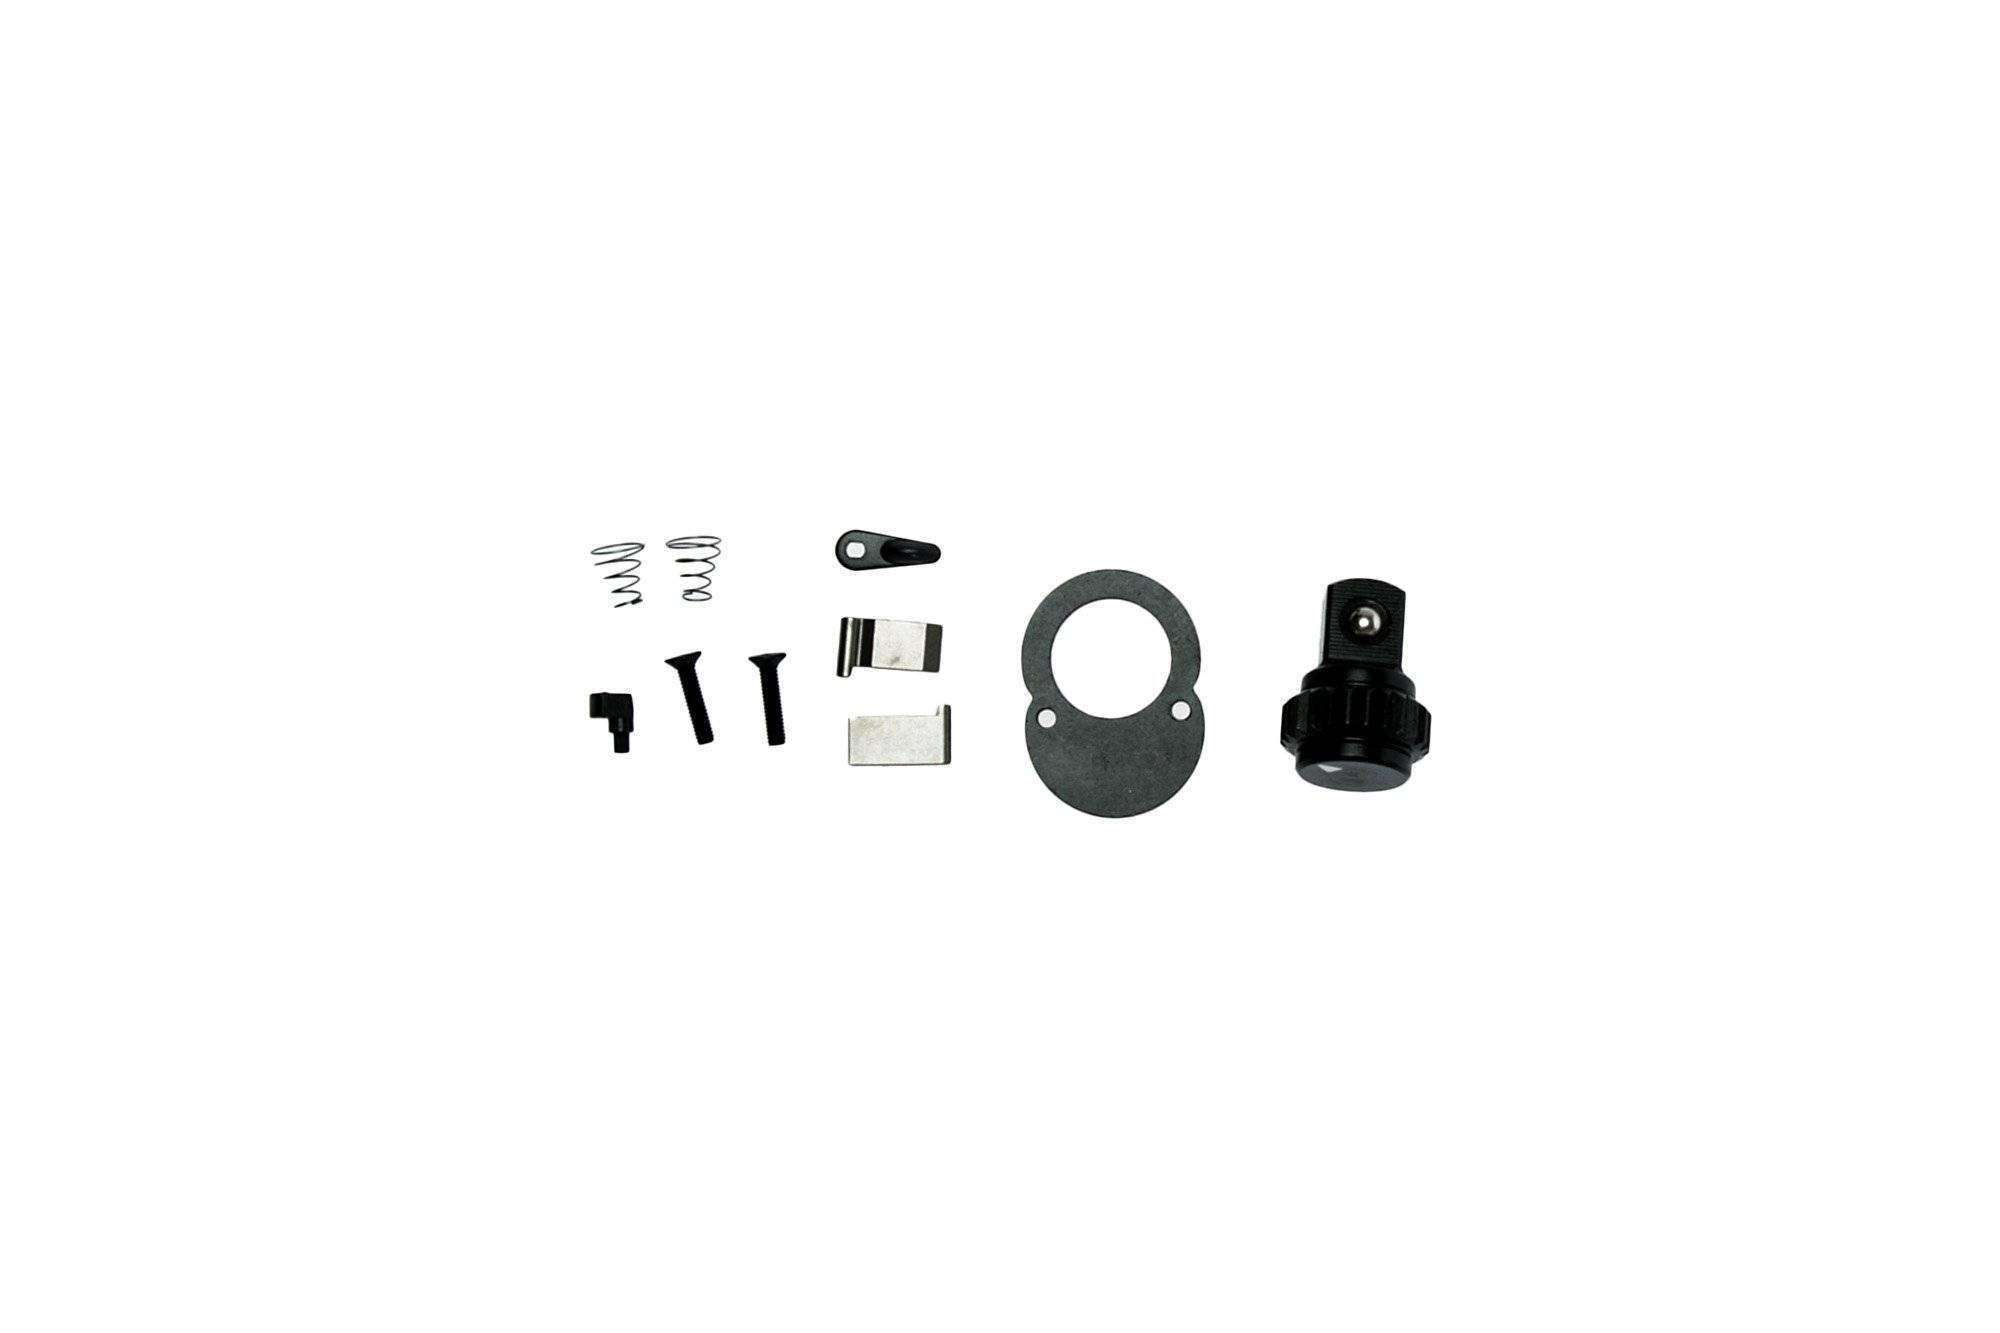 REPAIR KIT FOR #3892AG-E1 - Teng Tools USA